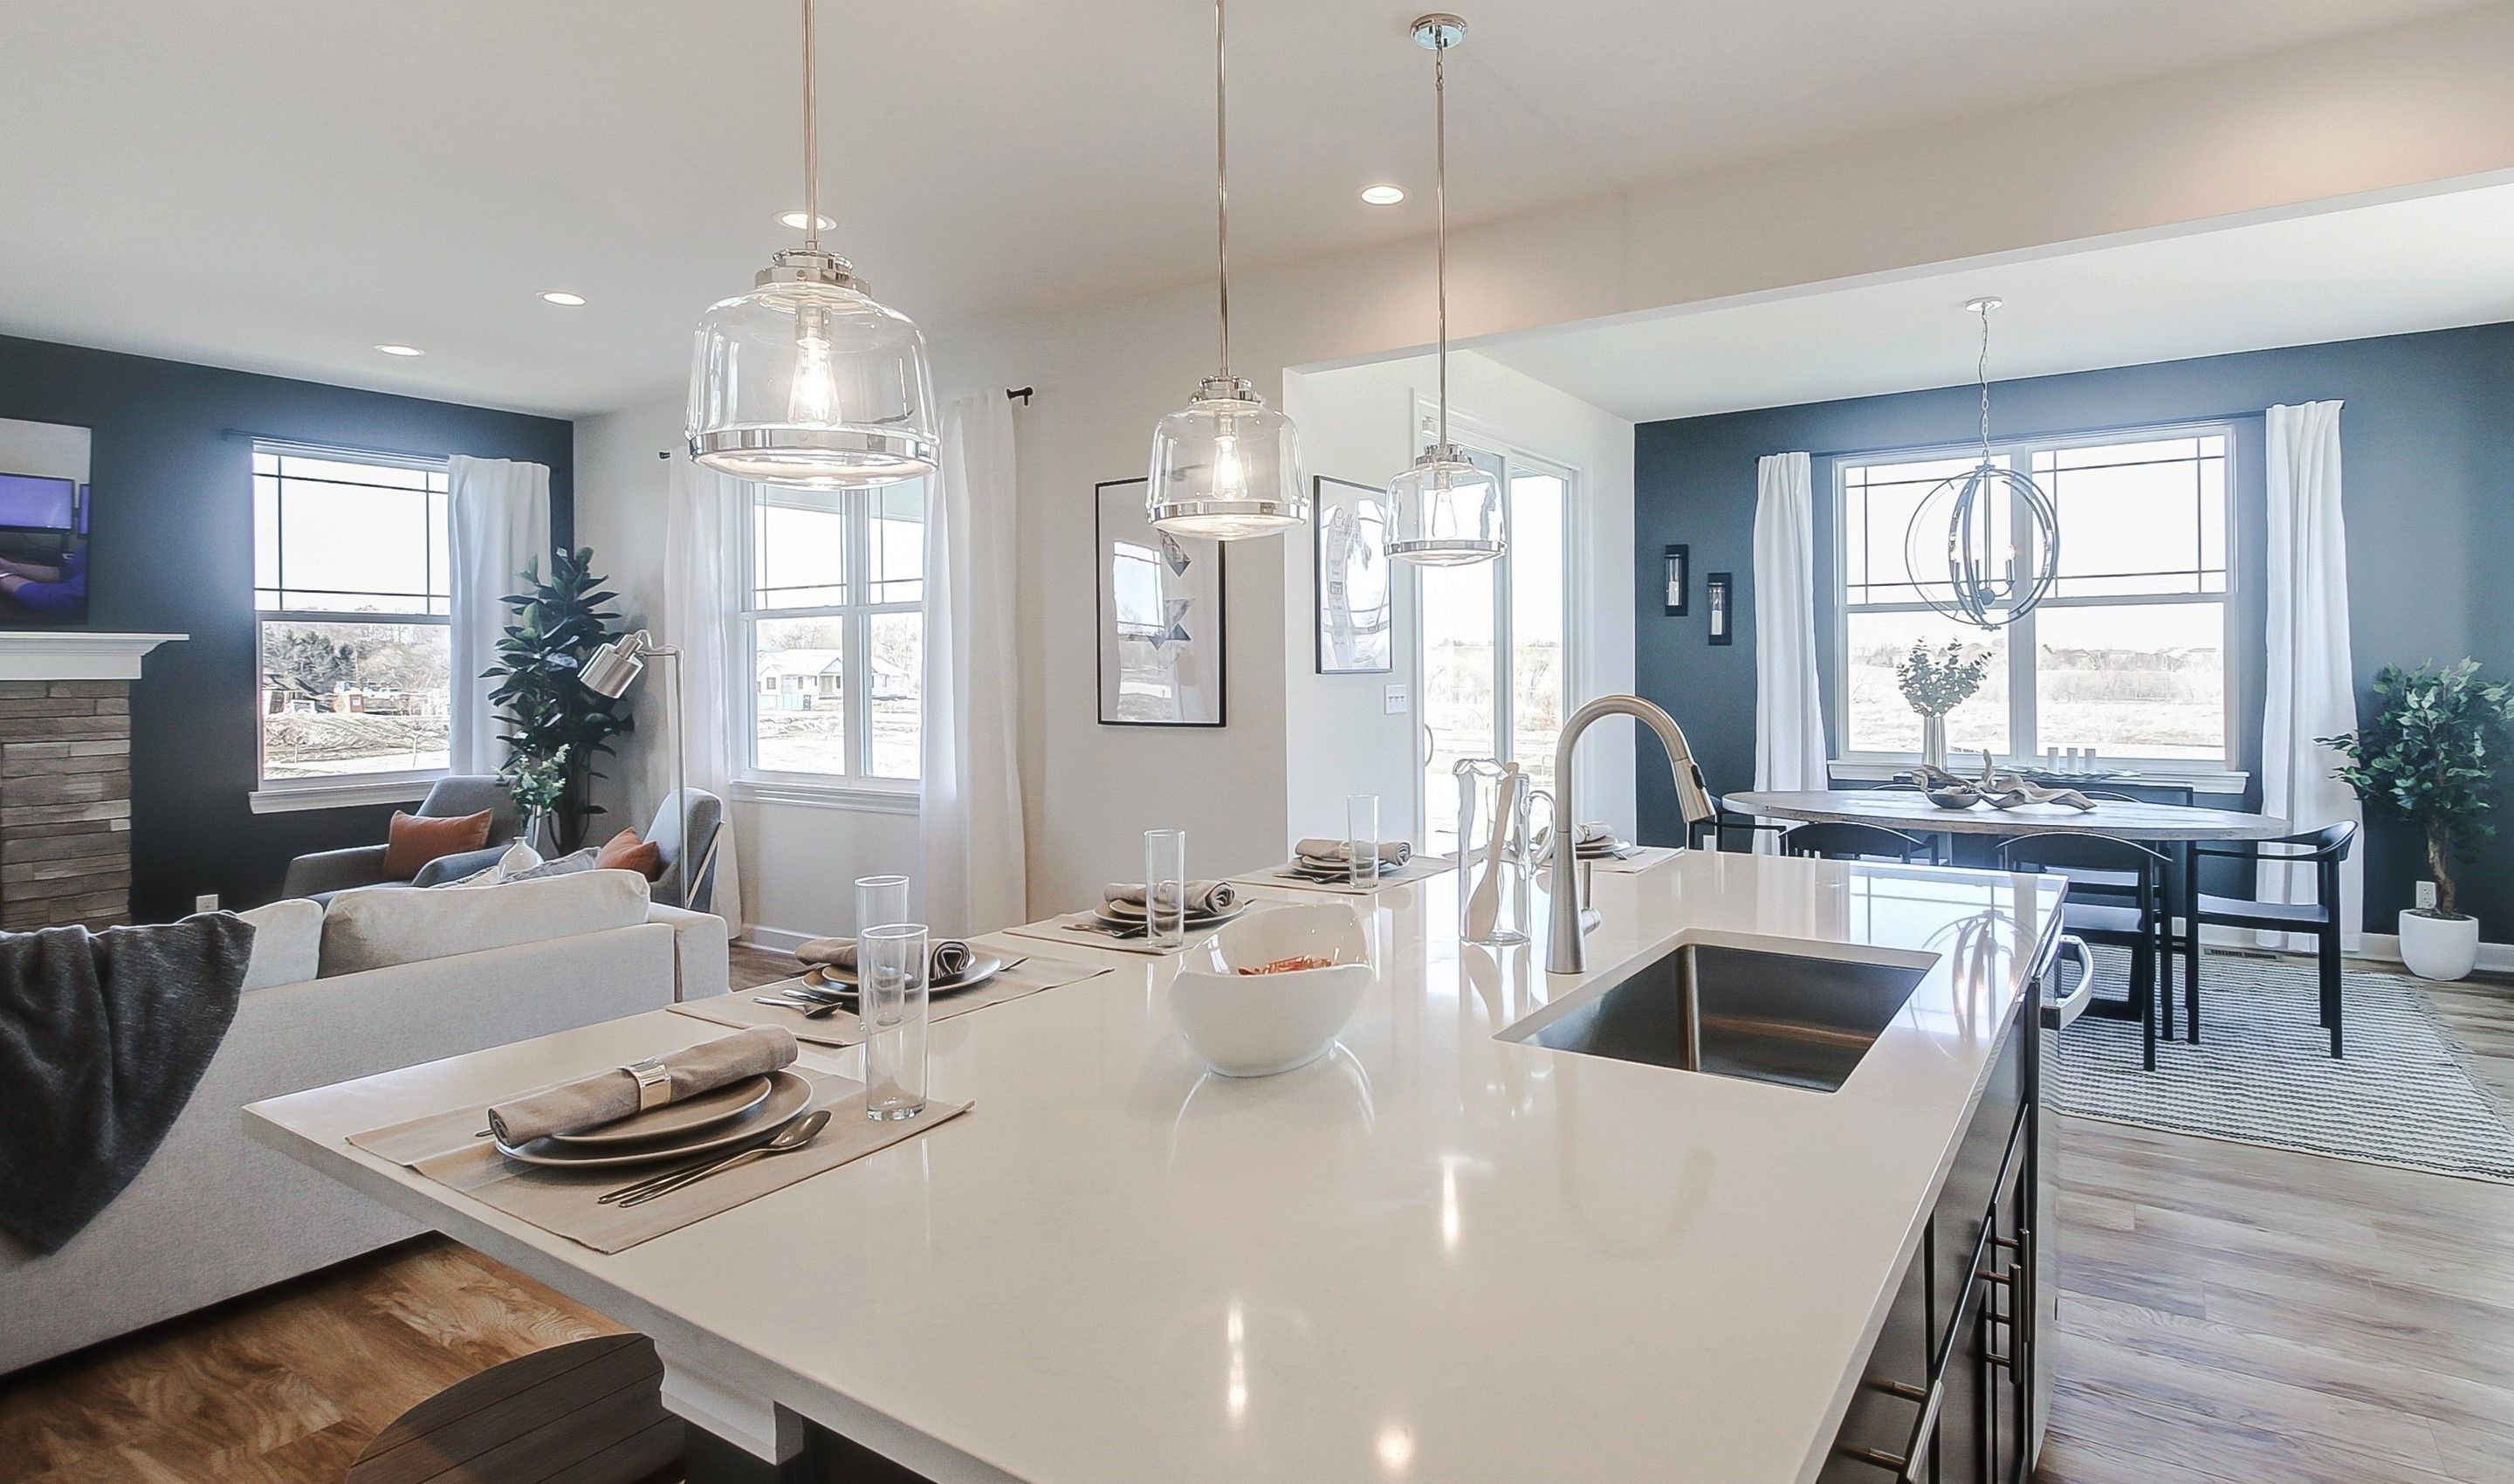 Kitchen featured in the Henley II By K. Hovnanian® Homes in Chicago, IL